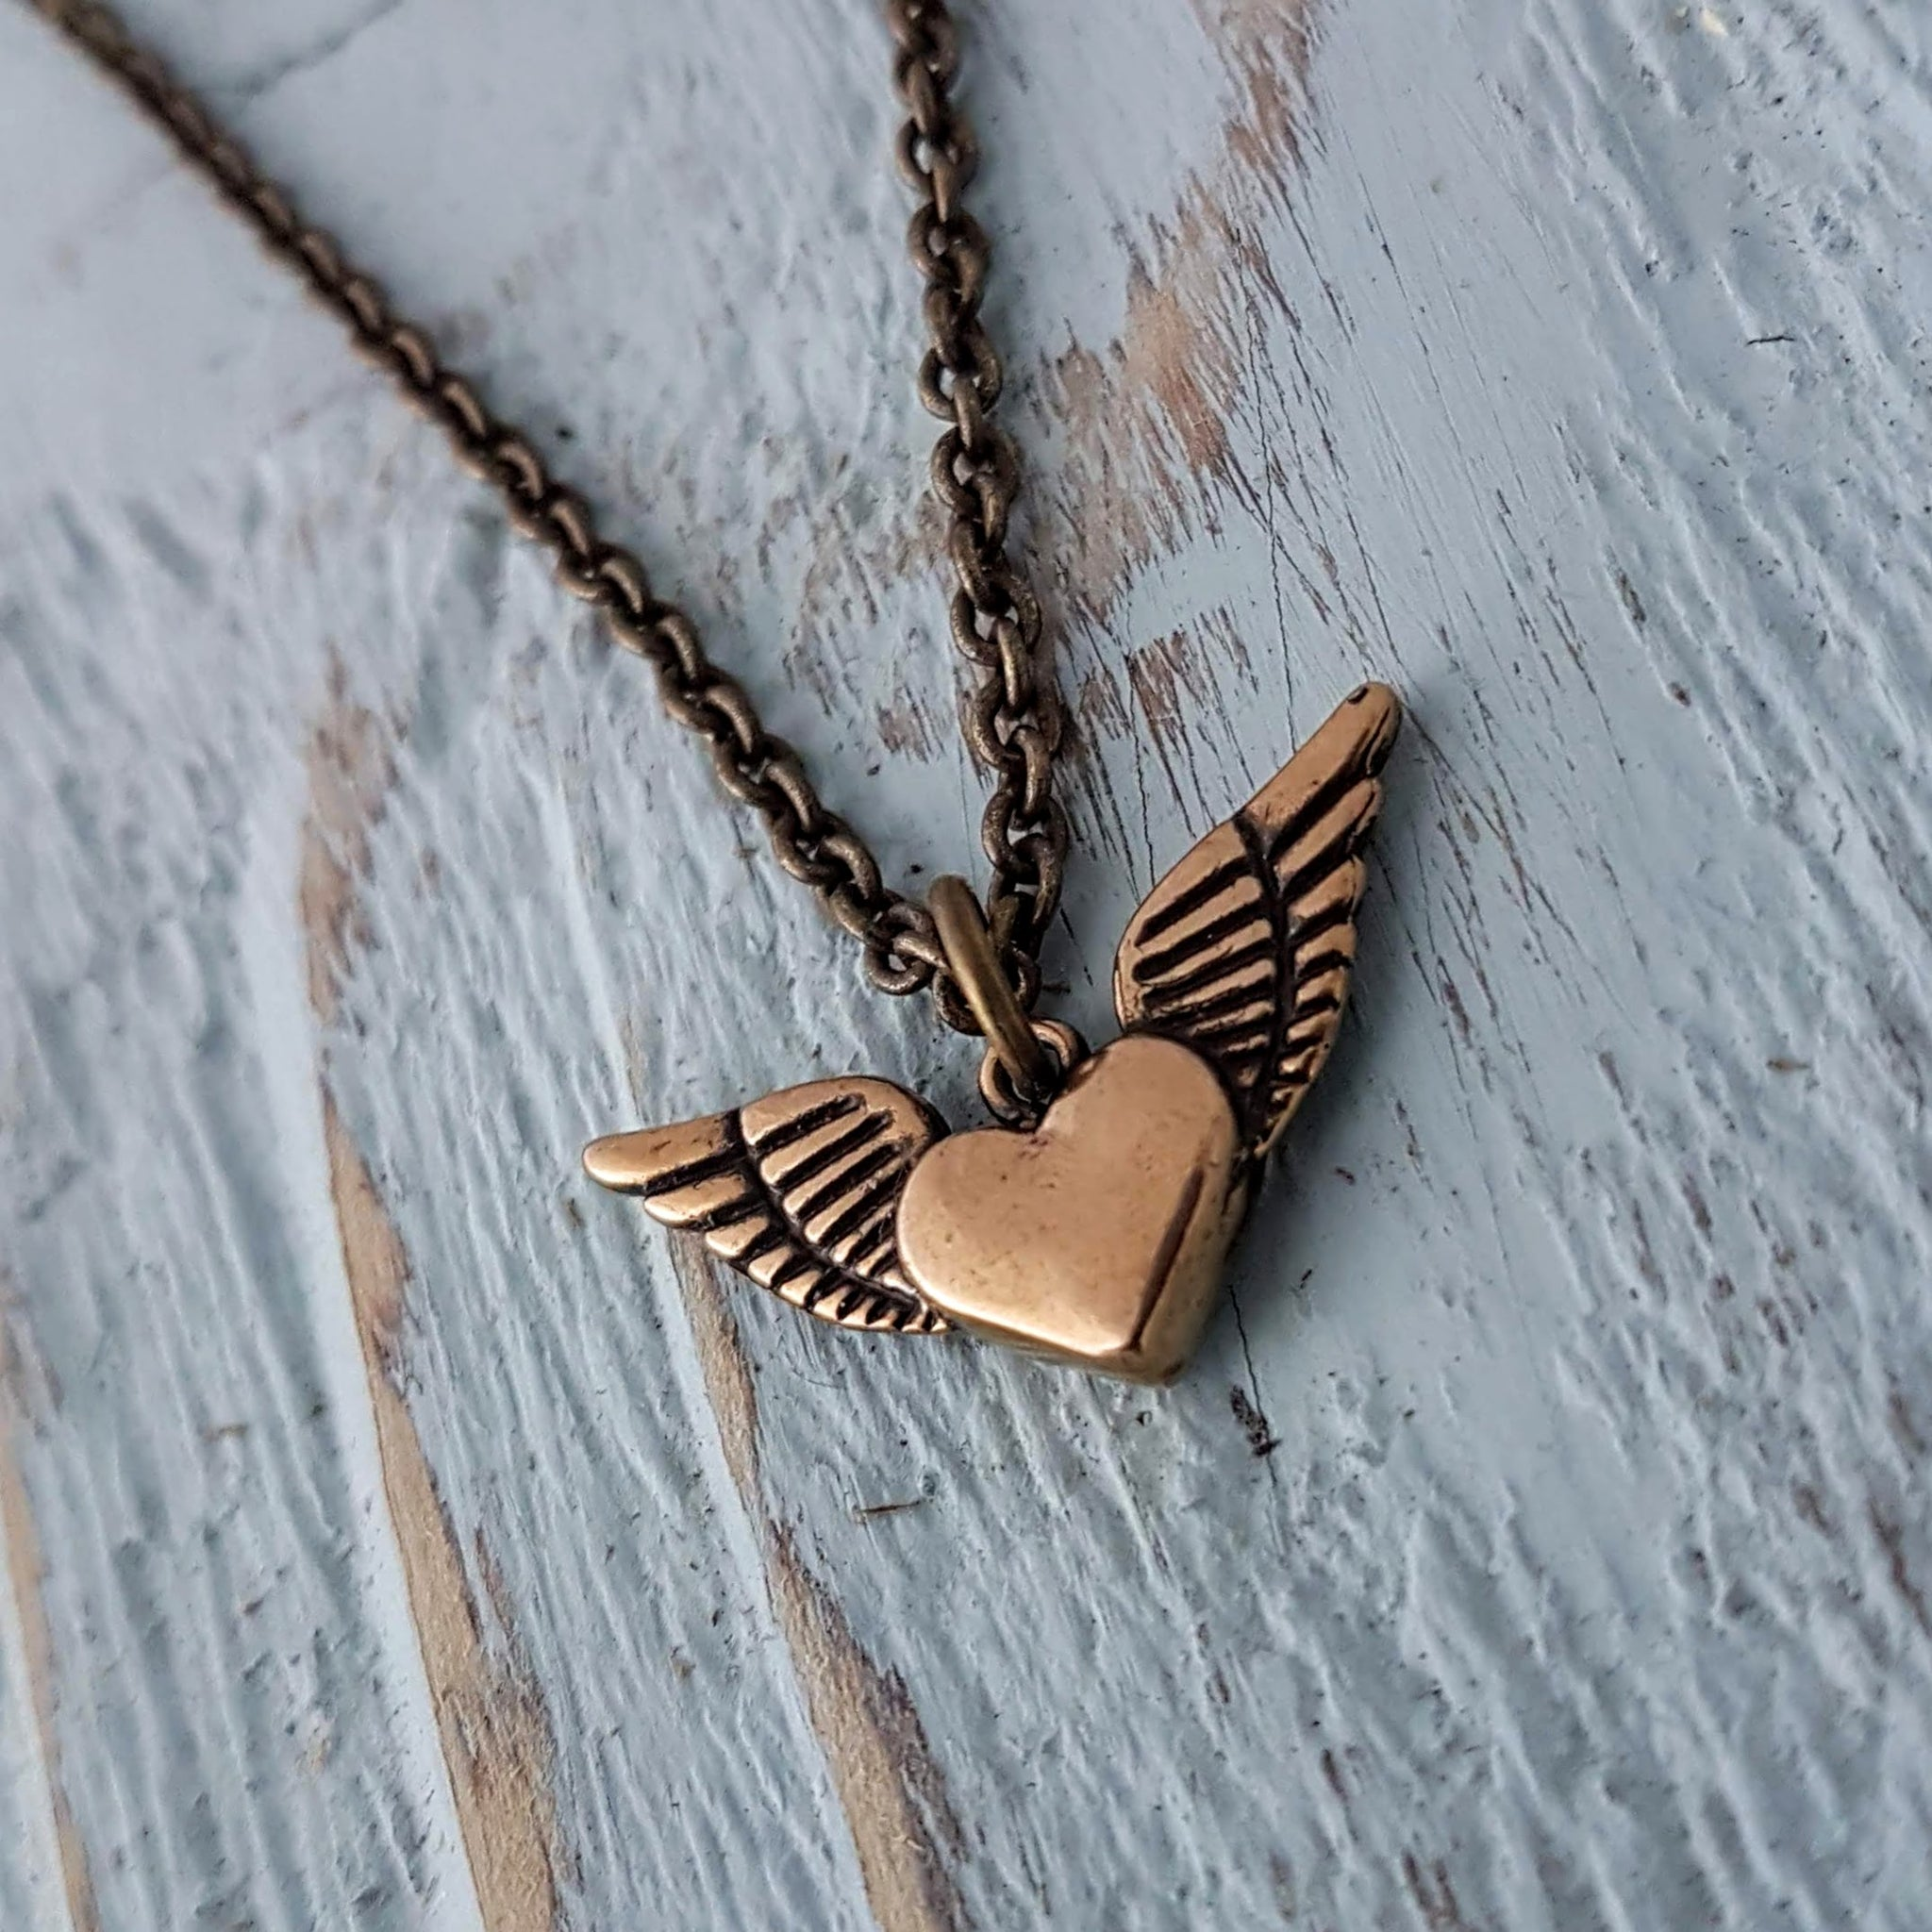 Flying Heart Necklace - Winged Heart Charm - Gwen Delicious Jewelry Designs